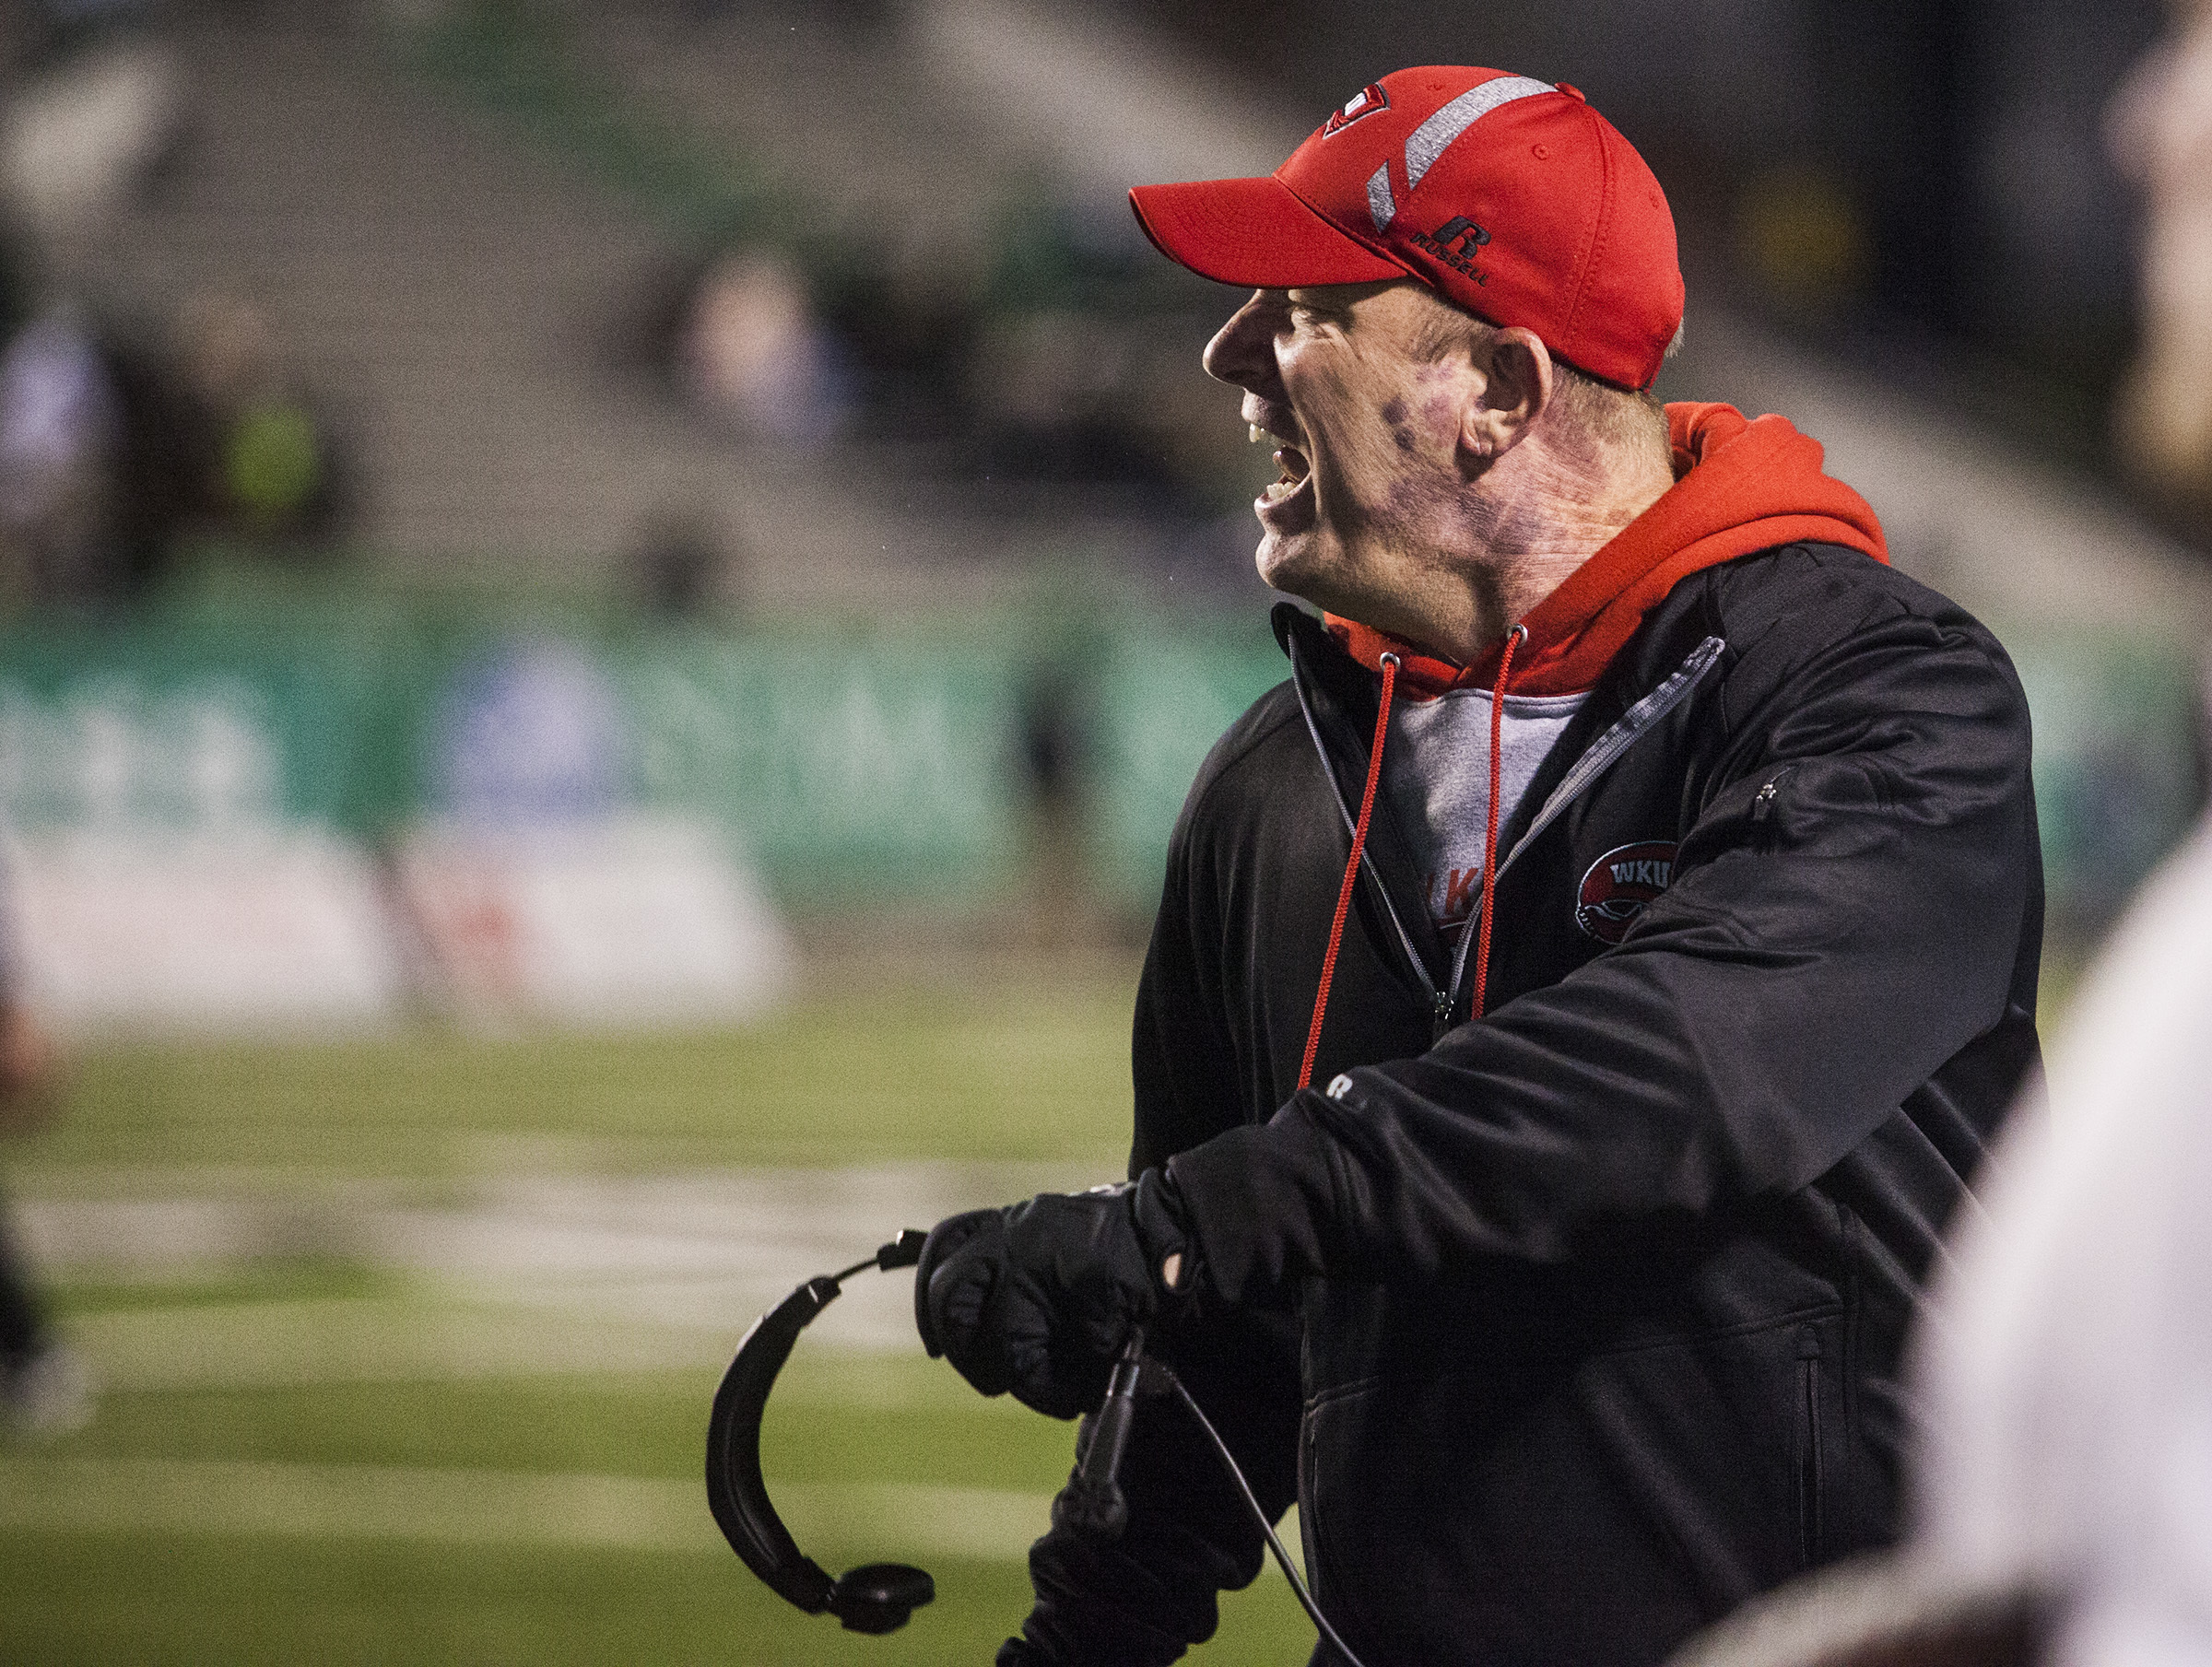 Western Kentucky coach Jeff Brohm shouts at a player during Western Kentucky's 60-6 win over Marshall in an NCAA college football game Saturday, Nov. 26, 2016, in Huntington, W.Va. (Austin Anthony/Daily News via AP)